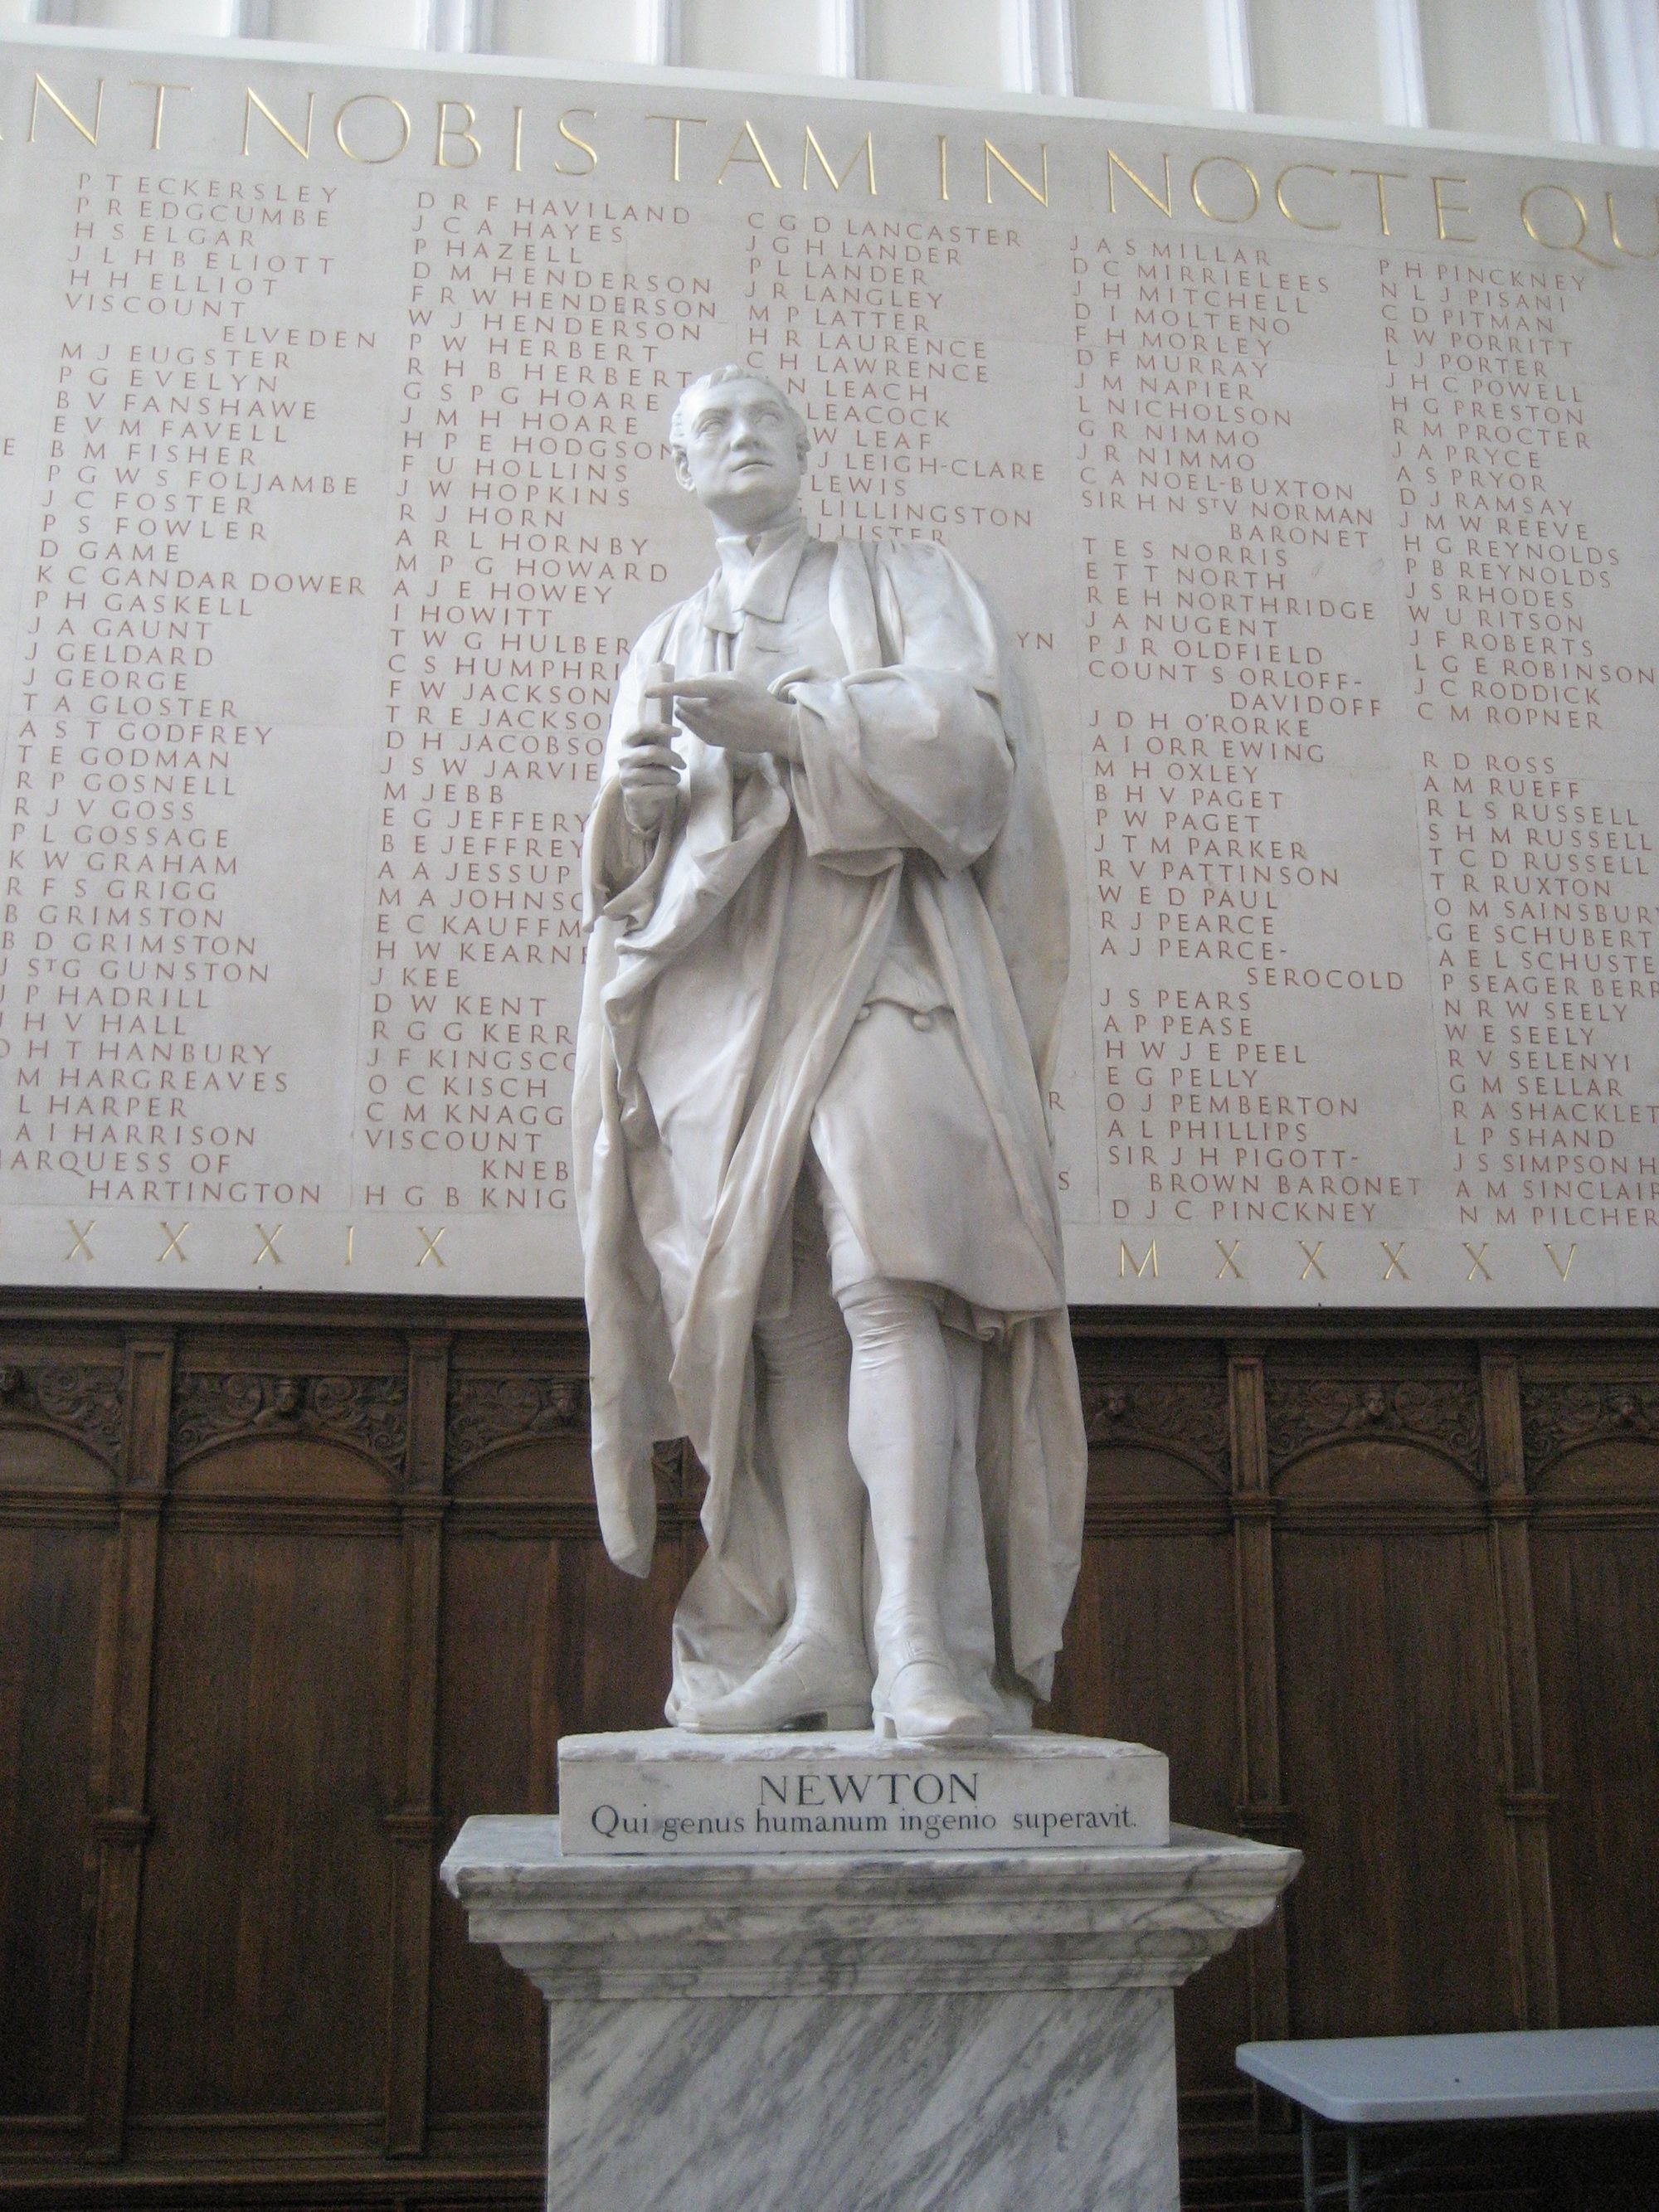 Statue of Isaac Newton at Trinity College, Cambridge